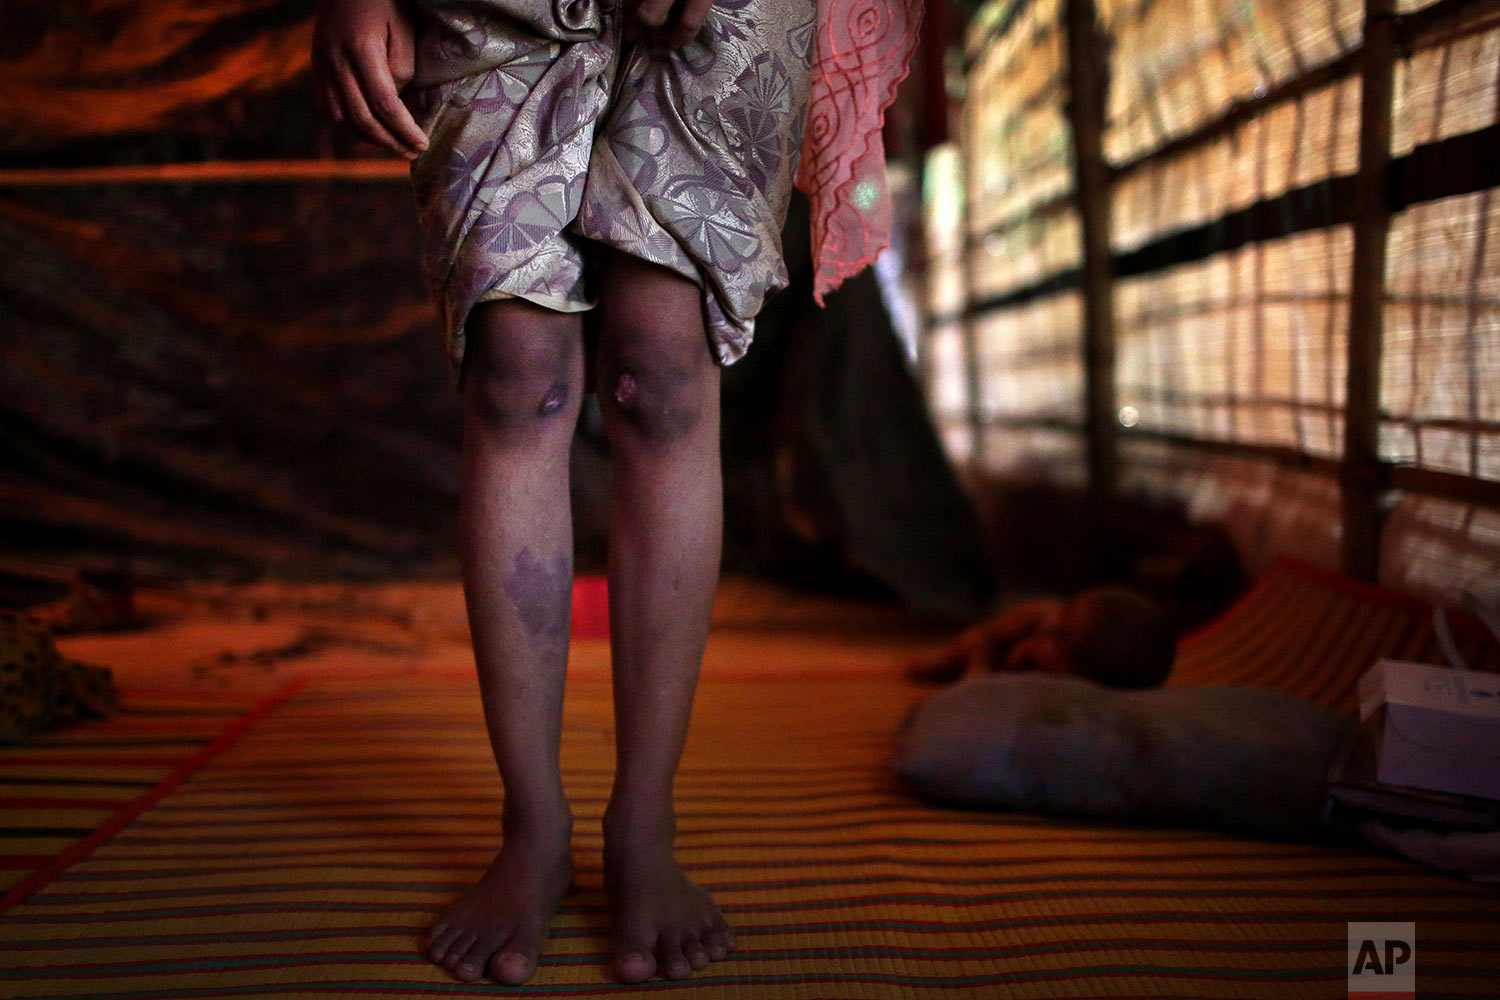 In this Sunday, Nov. 19, 2017, photo, R, 13, shows off the scars on her knees and right shin from injuries obtained when members of Myanmar's armed forces dragged her out of her house before gang raping her, during an interview with The Associated Press in Kutupalong refugee camp in Bangladesh. (AP Photo/Wong Maye-E)